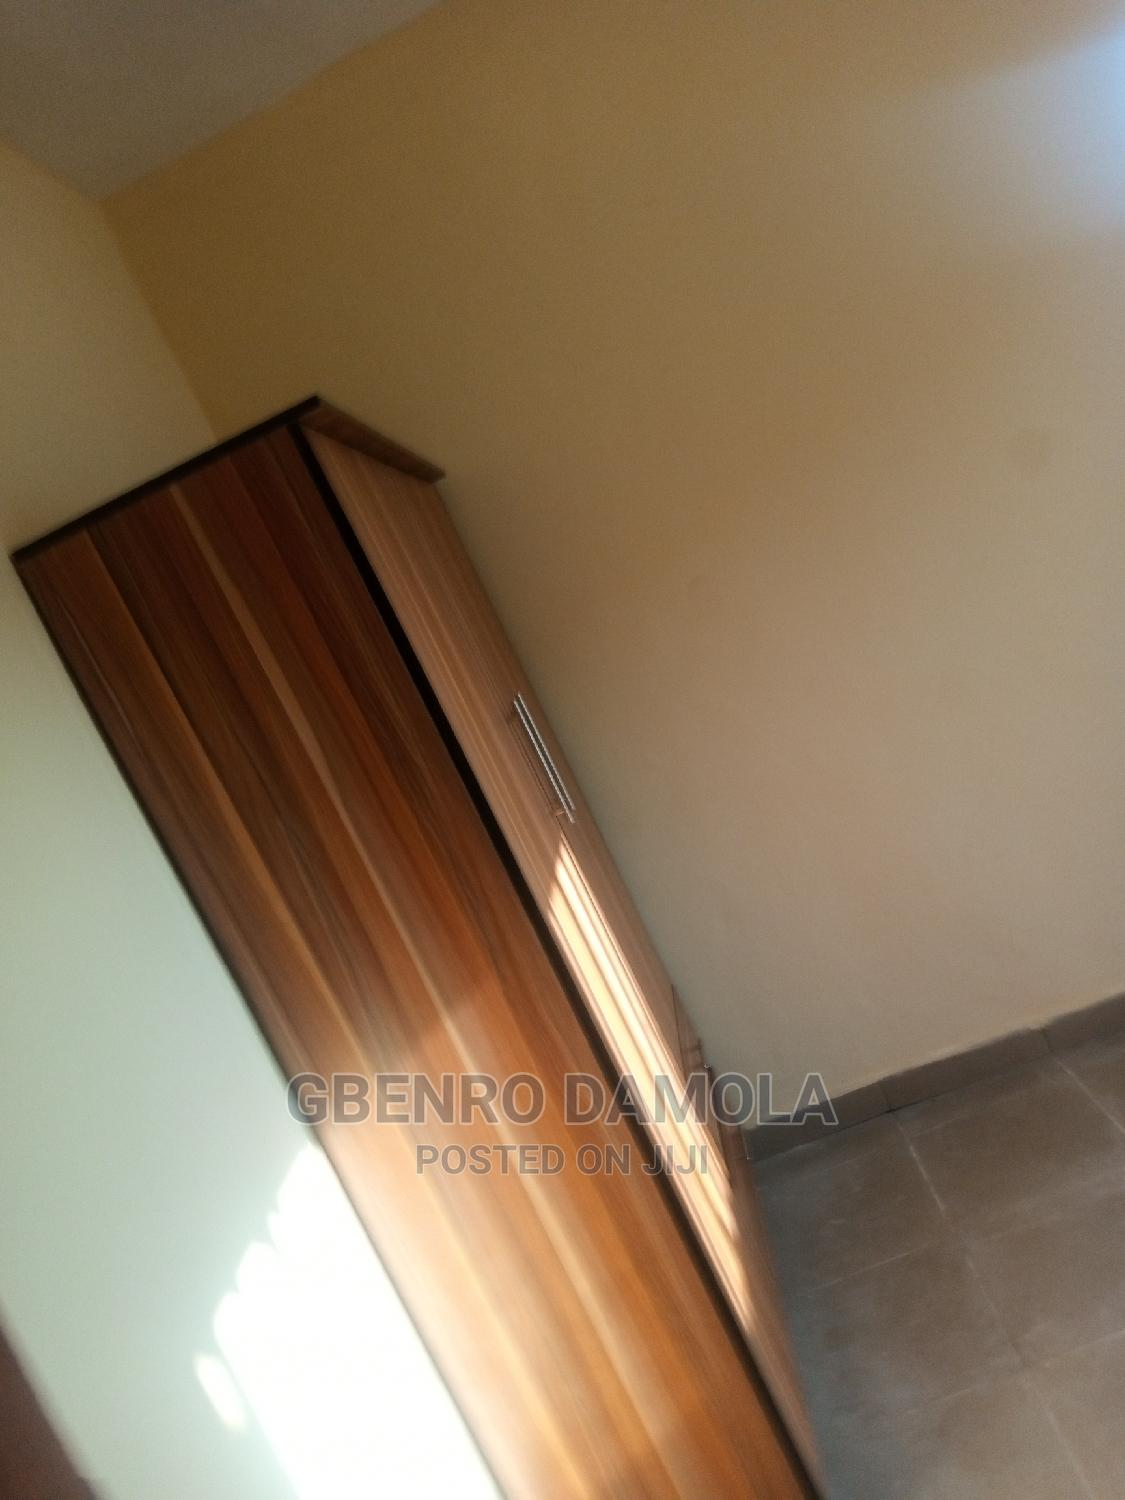 Furnished 3bdrm Apartment in Akesan, Igando / Ikotun/Igando for Rent | Houses & Apartments For Rent for sale in Igando / Ikotun/Igando, Ikotun/Igando, Nigeria